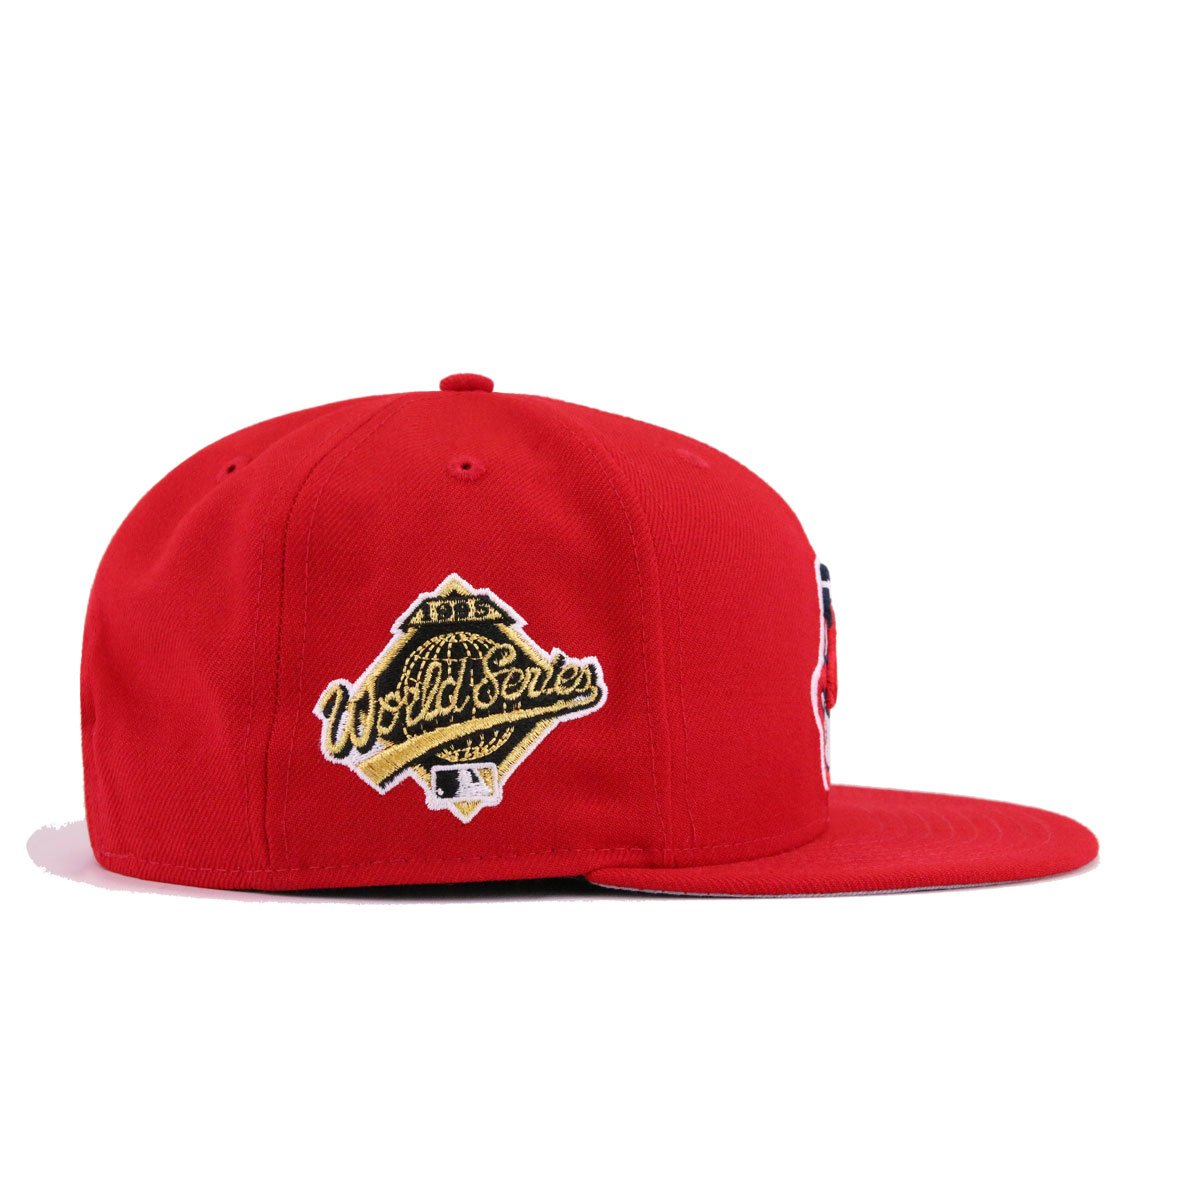 finest selection c51eb 3e4ac ... discount code for cleveland indians scarlet 1995 world series  cooperstown new era 9fifty snapback c8e96 9ece3